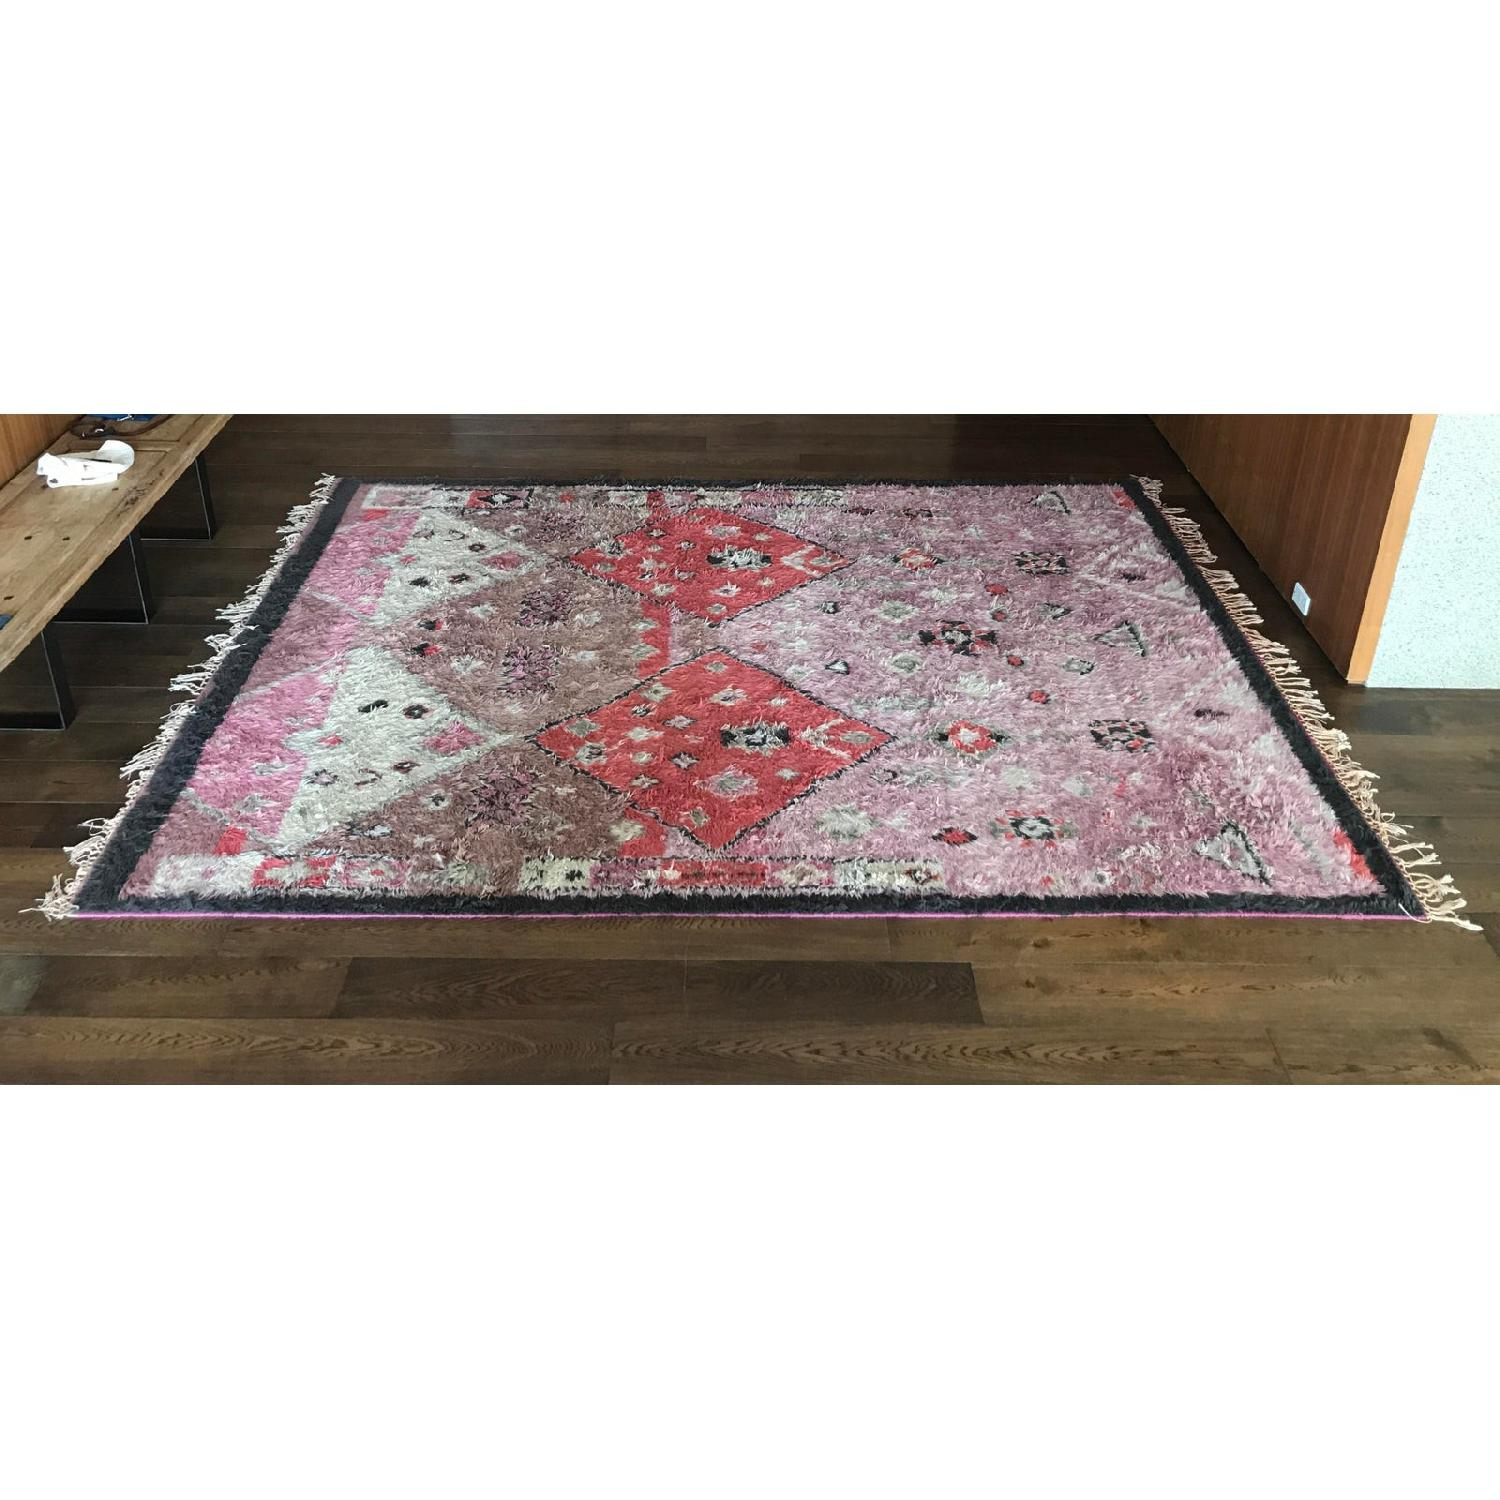 Anthropologie Hand-Knotted Double Diamond Rug - image-2